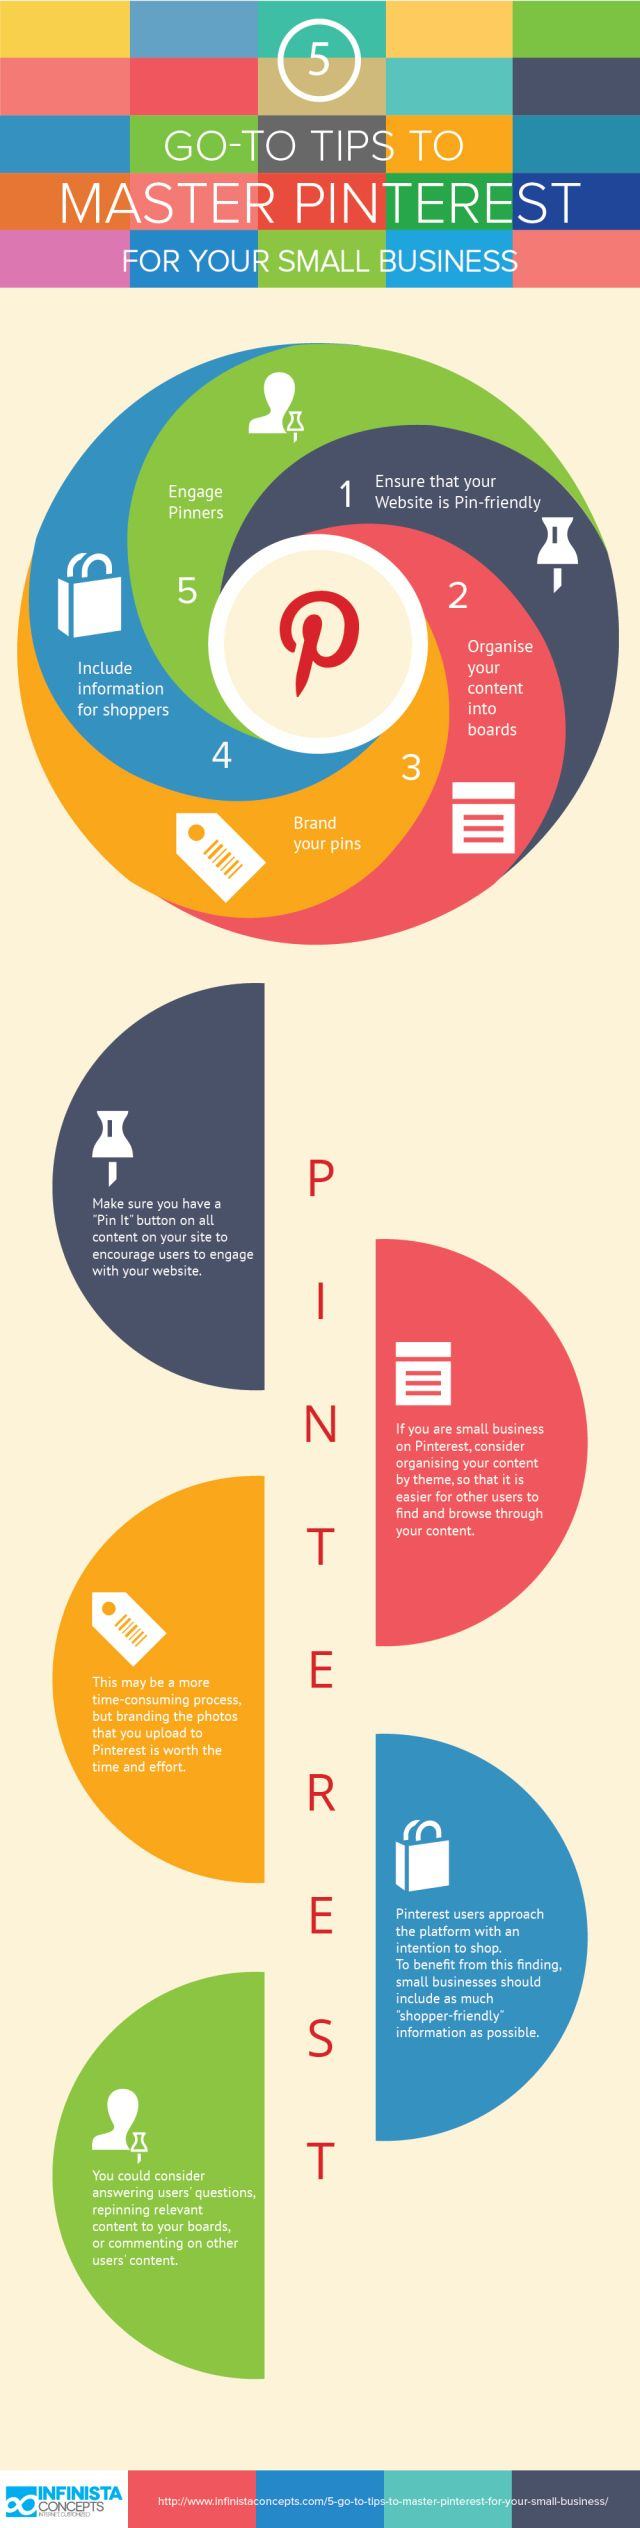 Pinterest for your small business #infografia #infographic #socialmedia